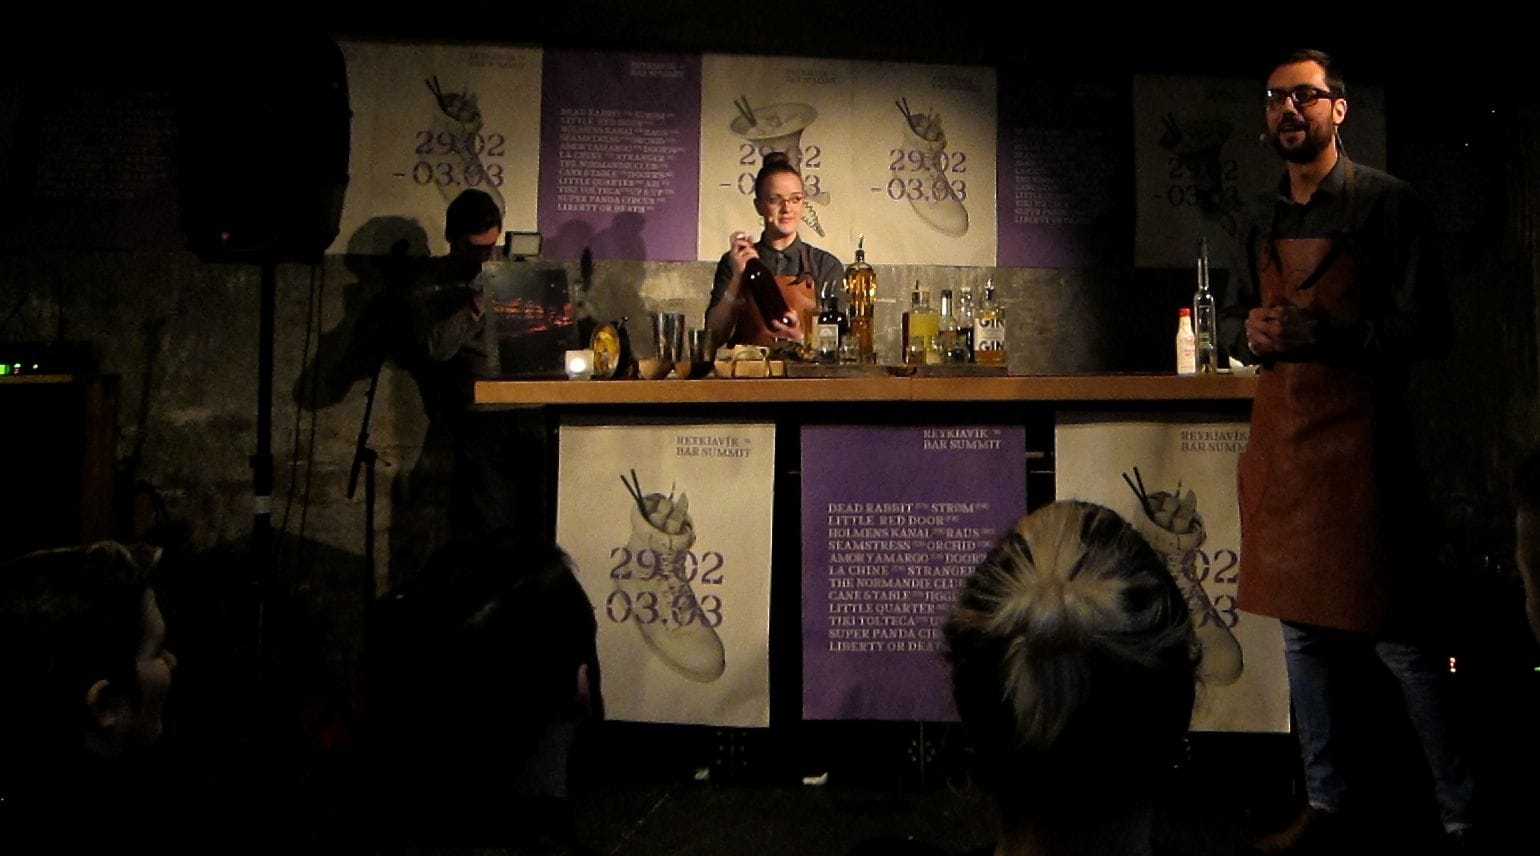 A21 WINS AN INTERNATIONAL COCKTAIL COMPETION!